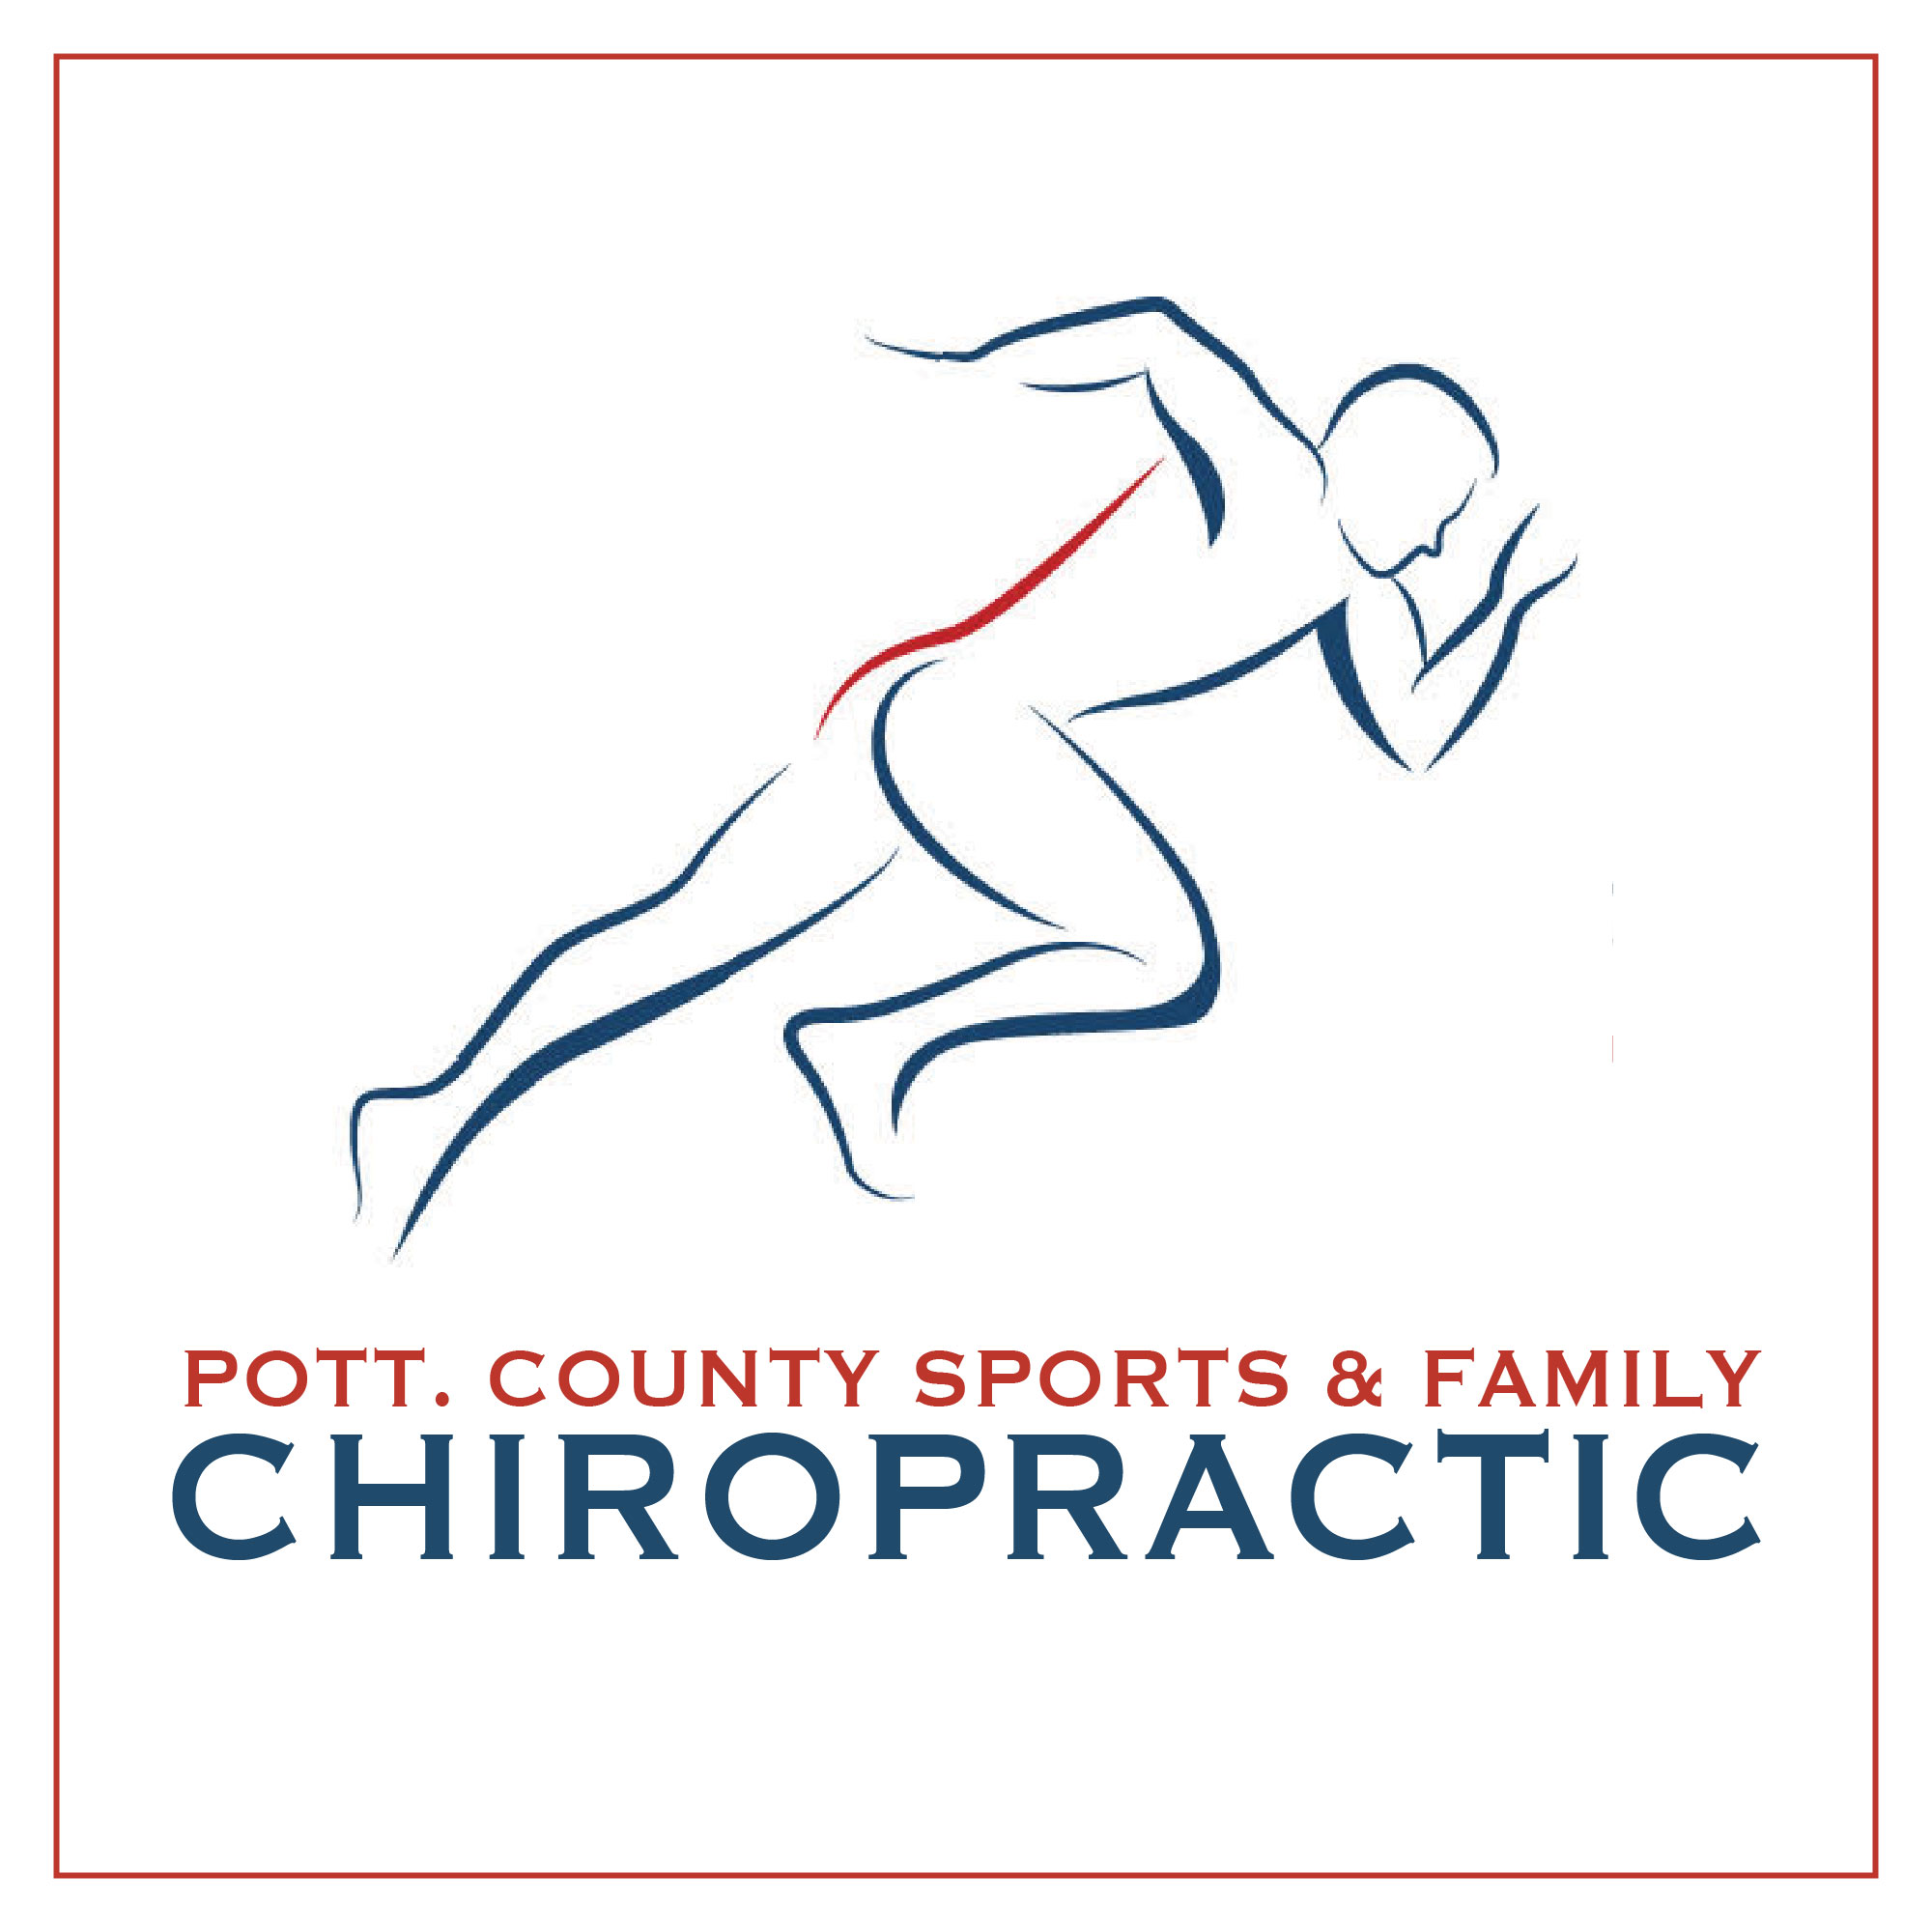 Pott. County Sports & Family Chiropractic square logo